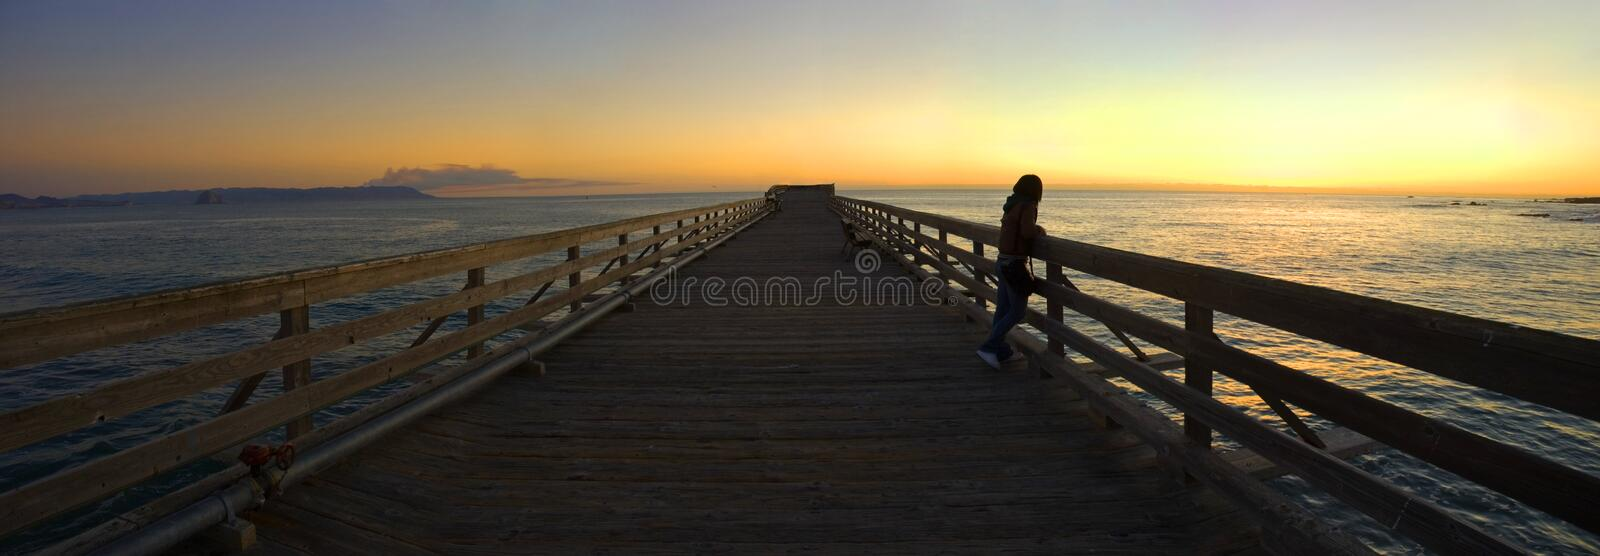 Woman On A Pier During Sunset Royalty Free Stock Photography